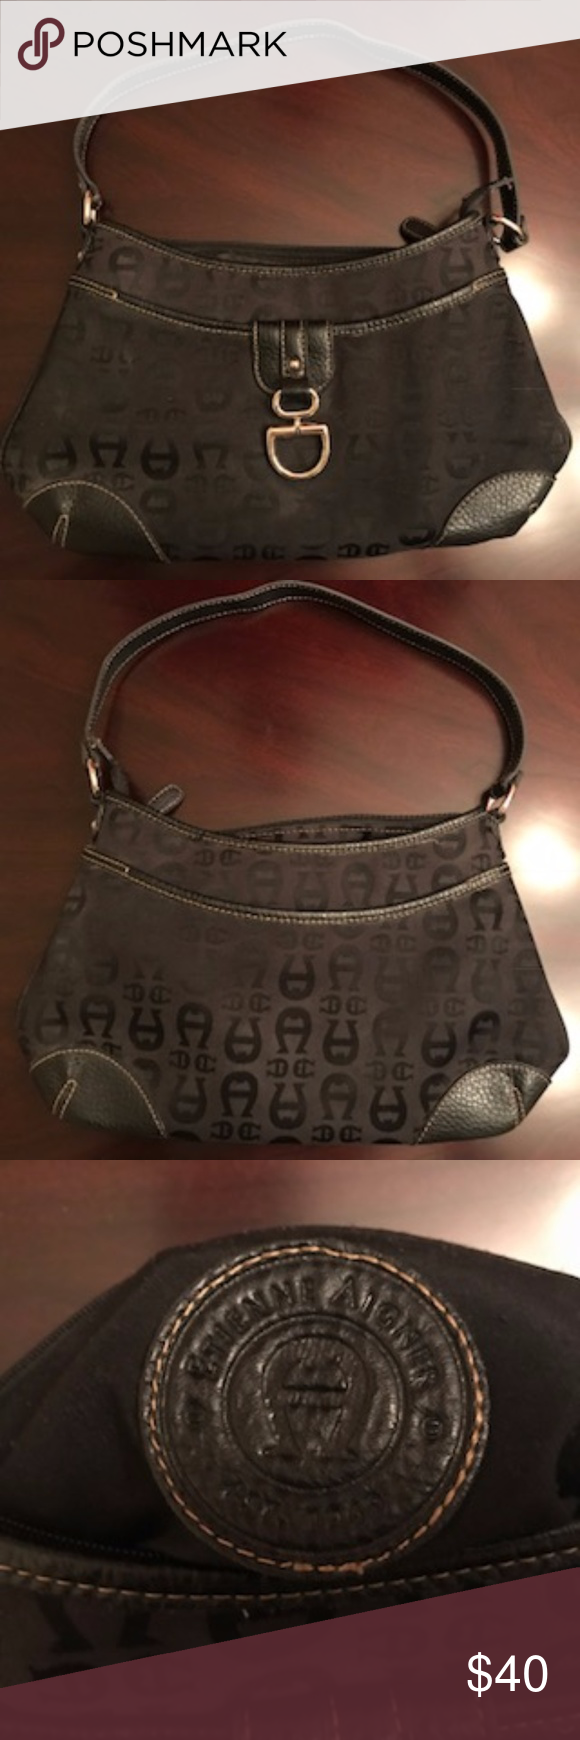 Etienne Aigner Black Purse Black Etienne Aigner purse. Purse is small, but has a middle pocket on the inside. Gently used, in good condition. Etienne Aigner Bags